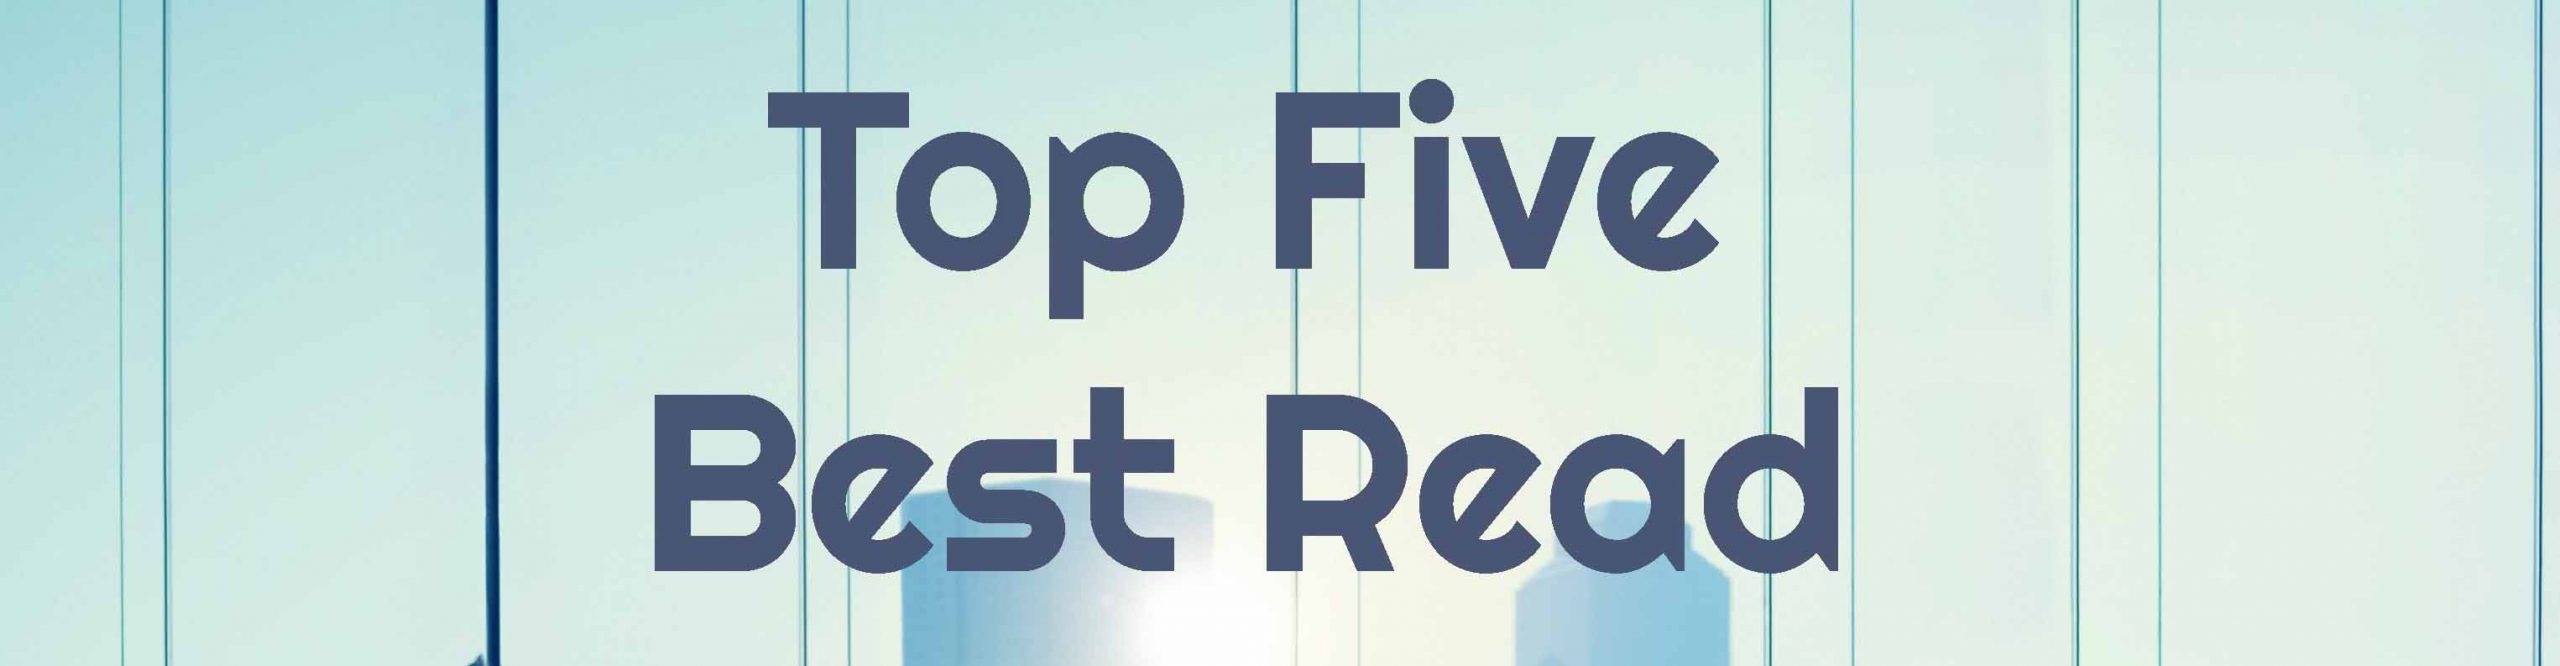 Hans Rosling and 'Scary Statistics' made it into our Top Five!